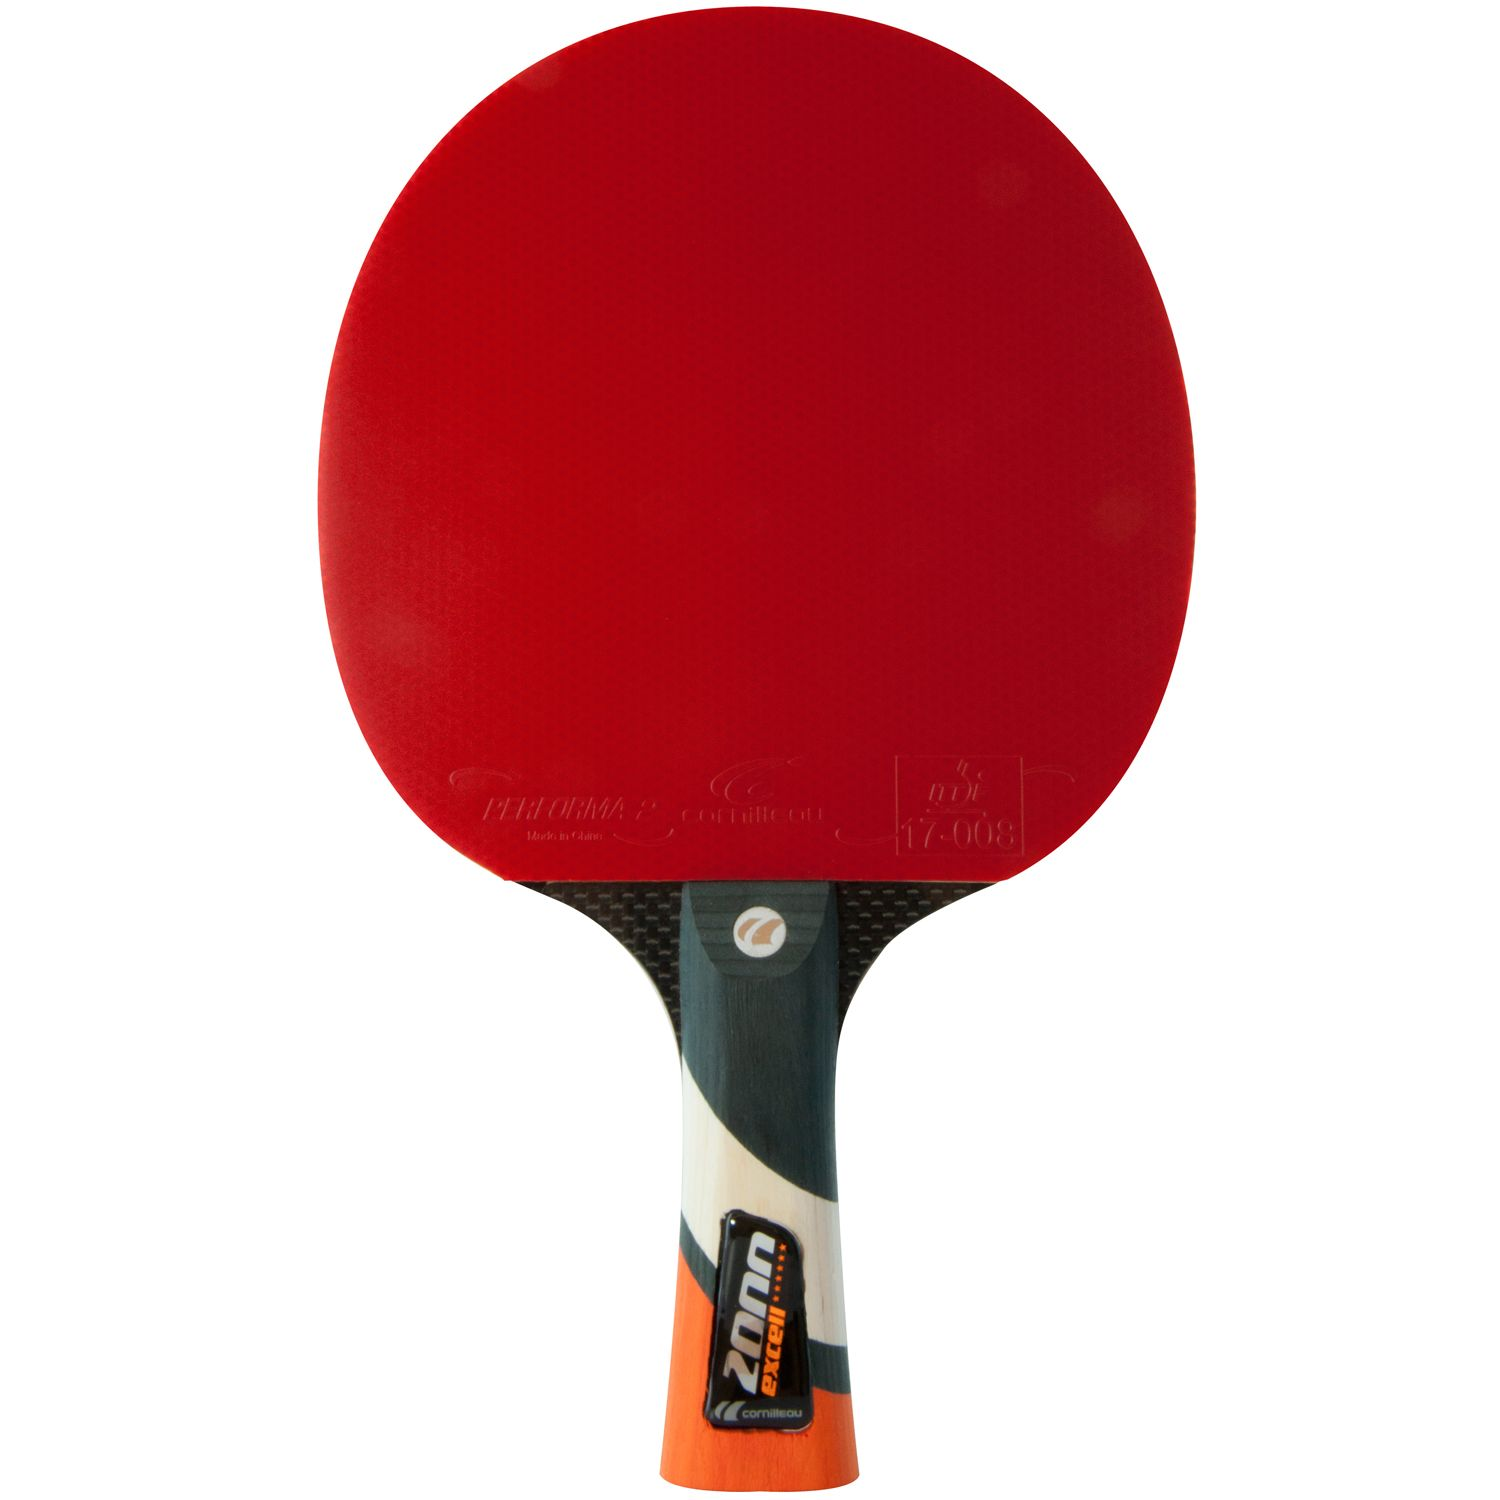 Cornilleau excell 2000 carbon phs performa 2 table tennis bat - Cornilleau table tennis bats ...